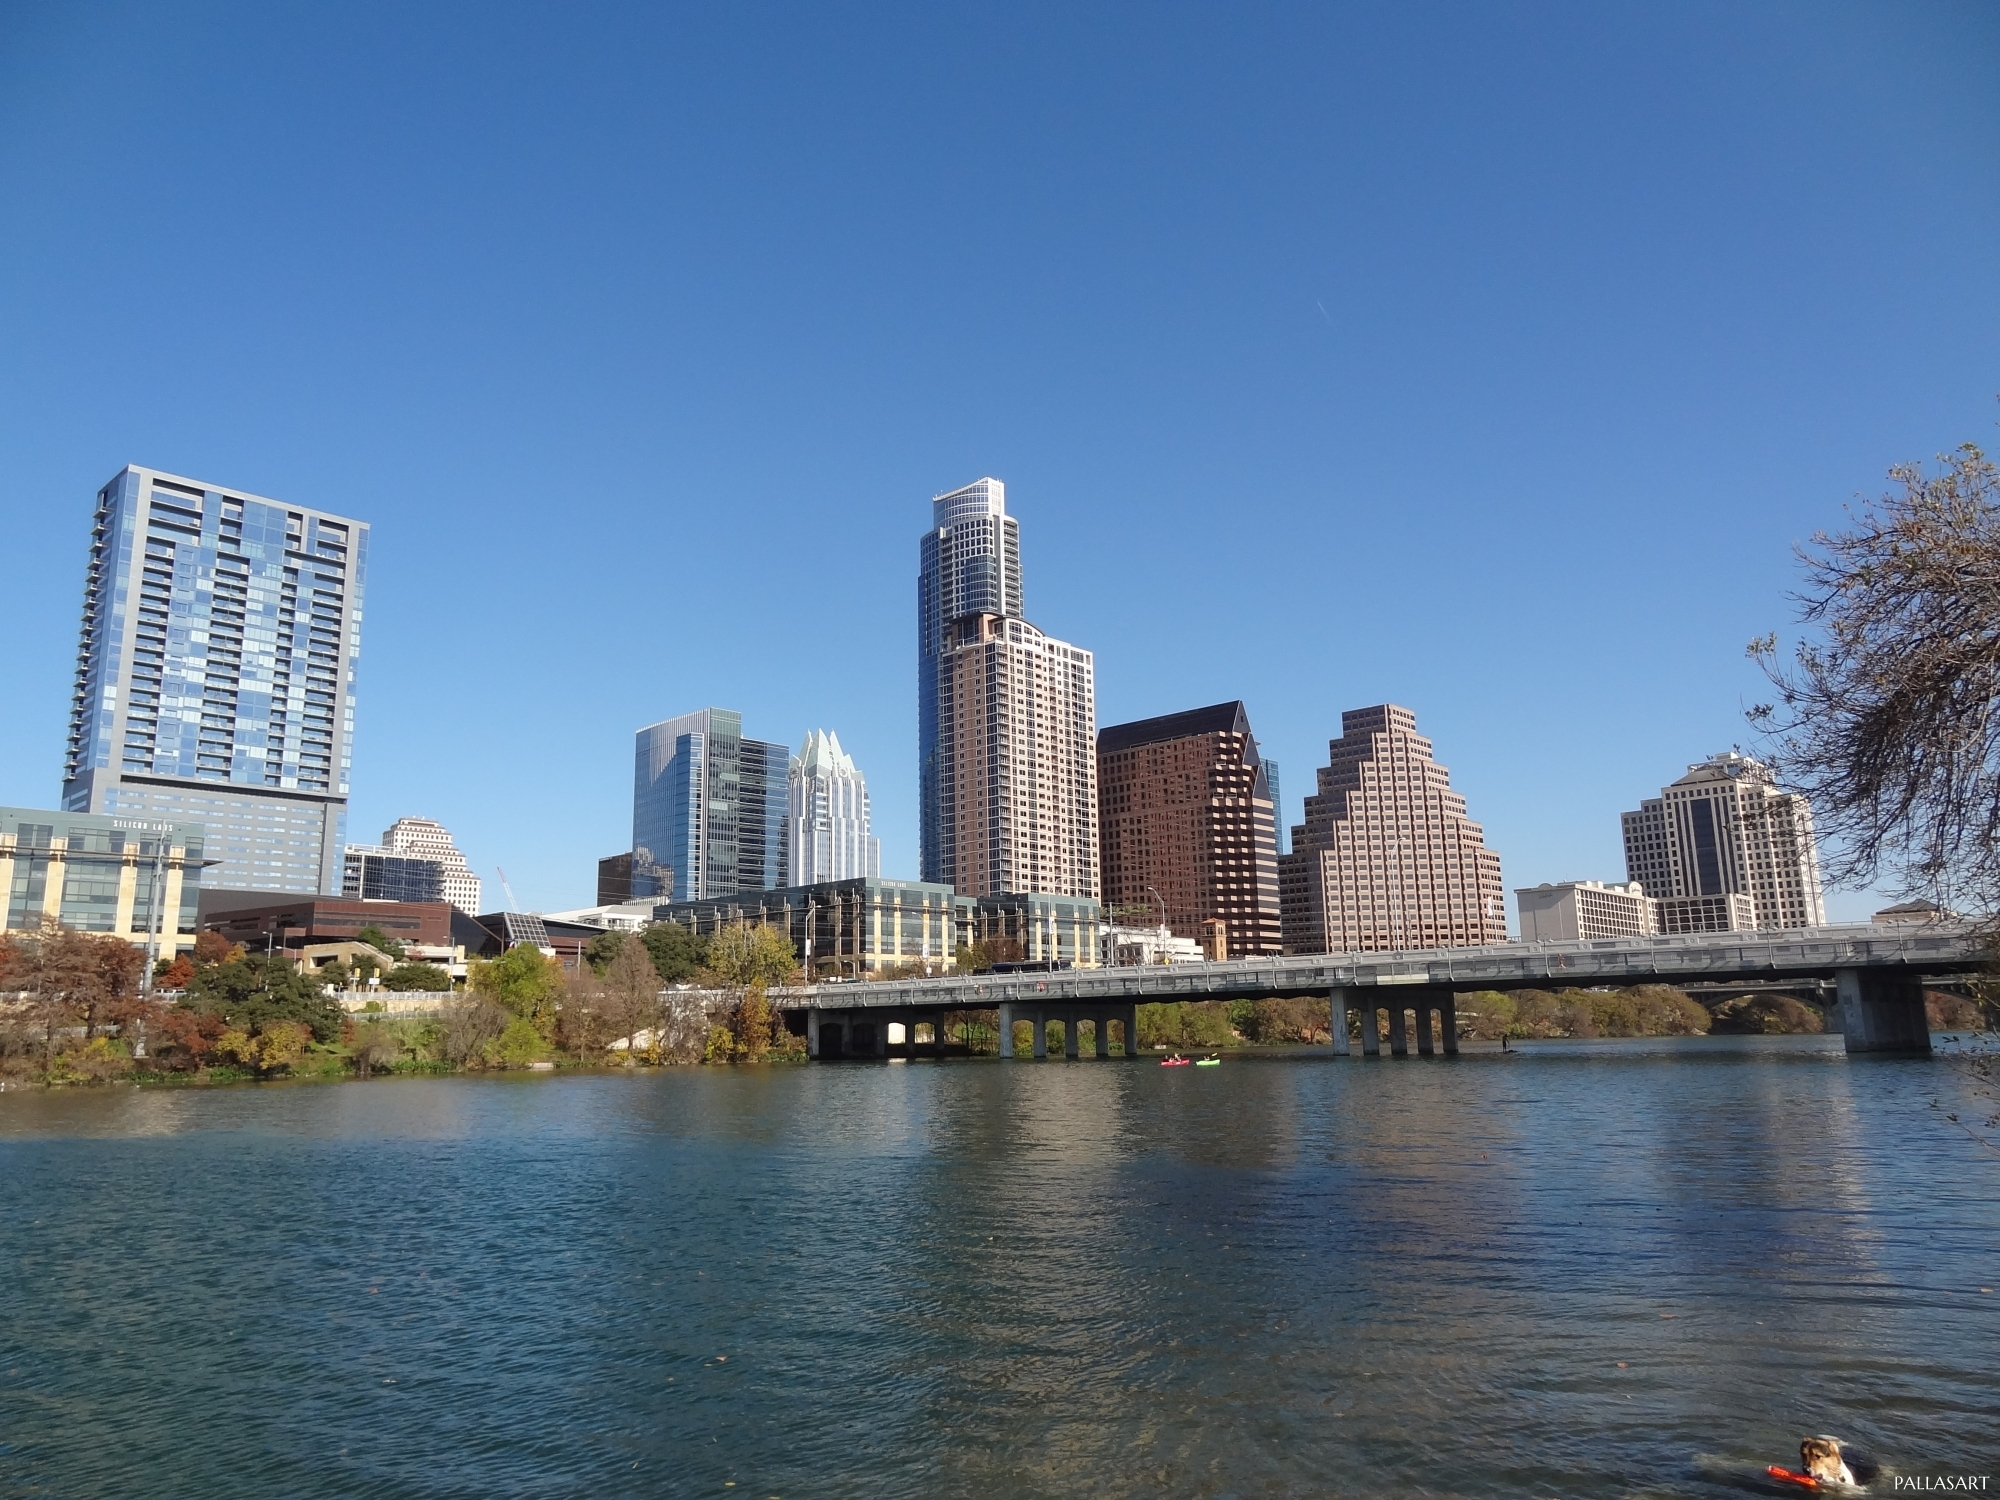 Lady Bird Lake or Town Lake in Austin Texas